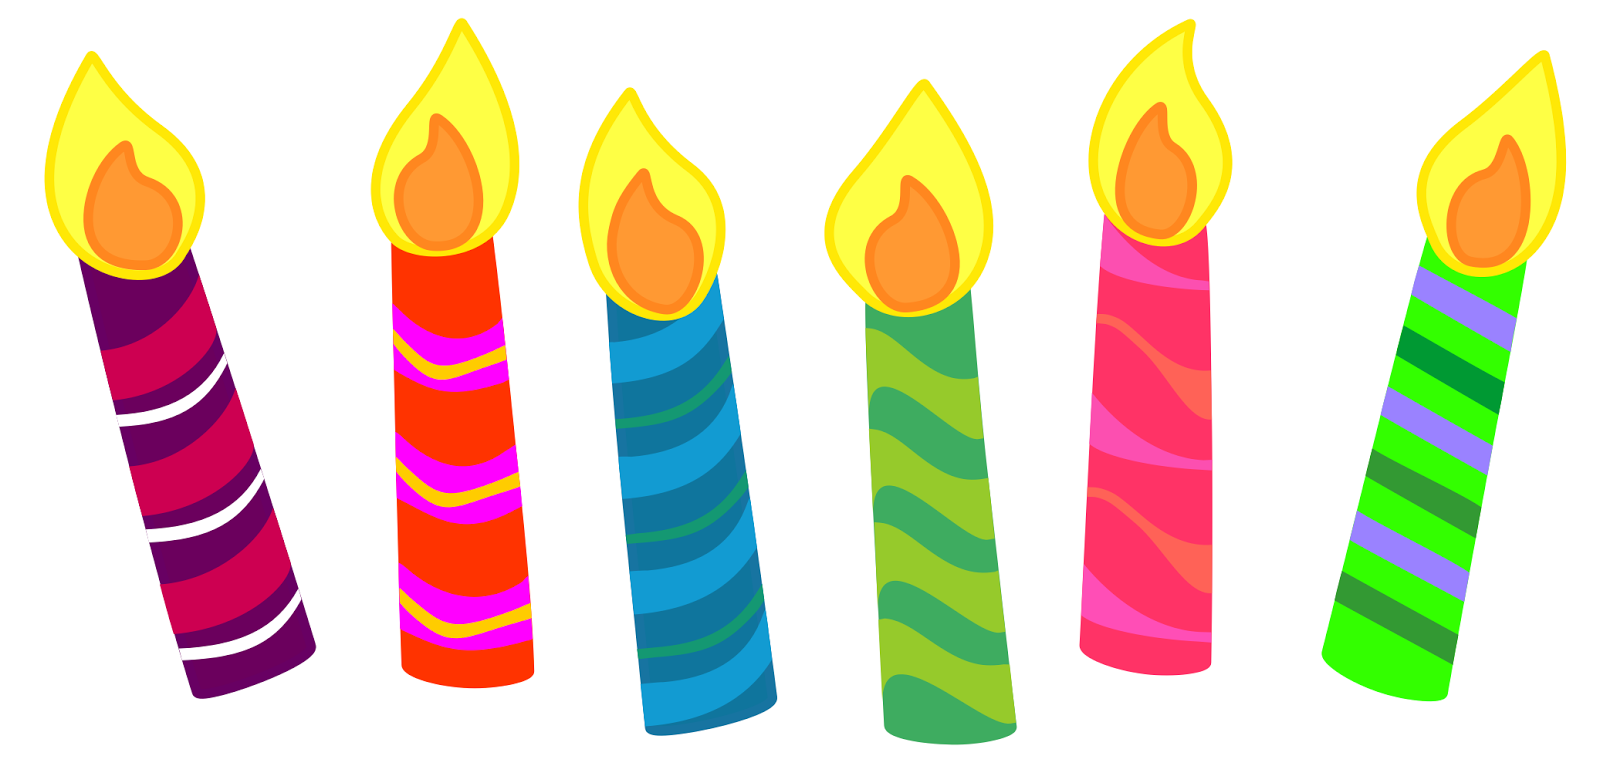 Birthday cake with candles not lit clipart picture royalty free candles clipart - Free Large Images | cards | Birthday cake clip art ... picture royalty free